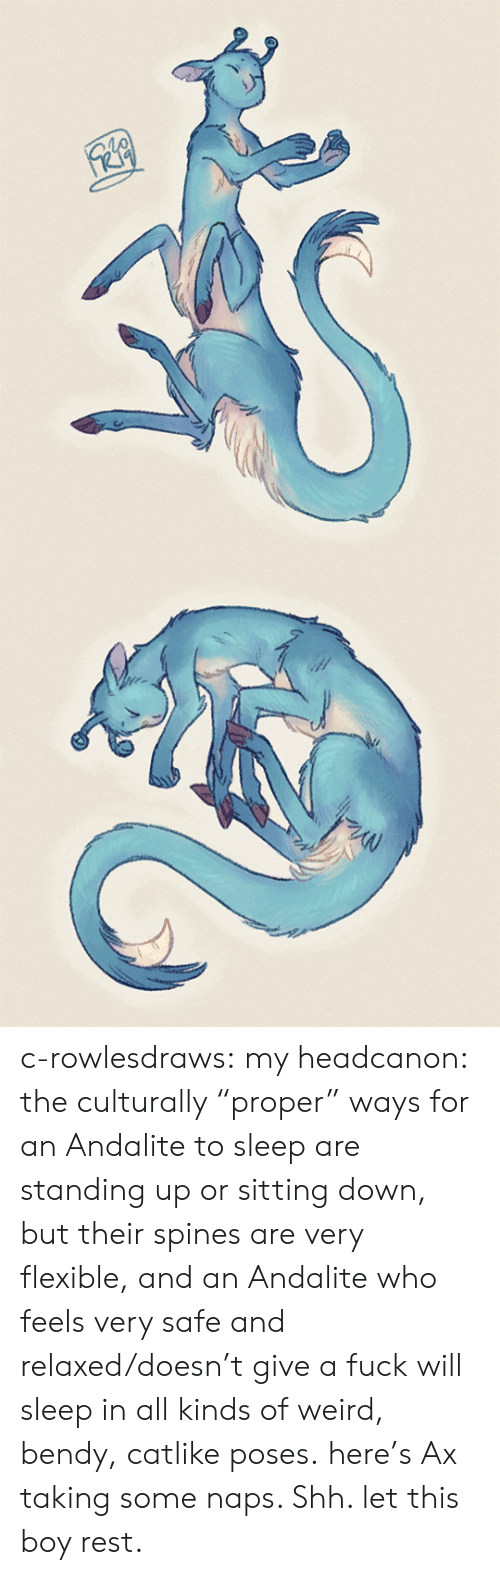 """sitting down: c-rowlesdraws: my headcanon: the culturally """"proper"""" ways for an Andalite to sleep are standing up or sitting down, but their spines are very flexible, and an Andalite who feels very safe and relaxed/doesn't give a fuck will sleep in all kinds of weird, bendy, catlike poses. here's Ax taking some naps. Shh. let this boy rest."""